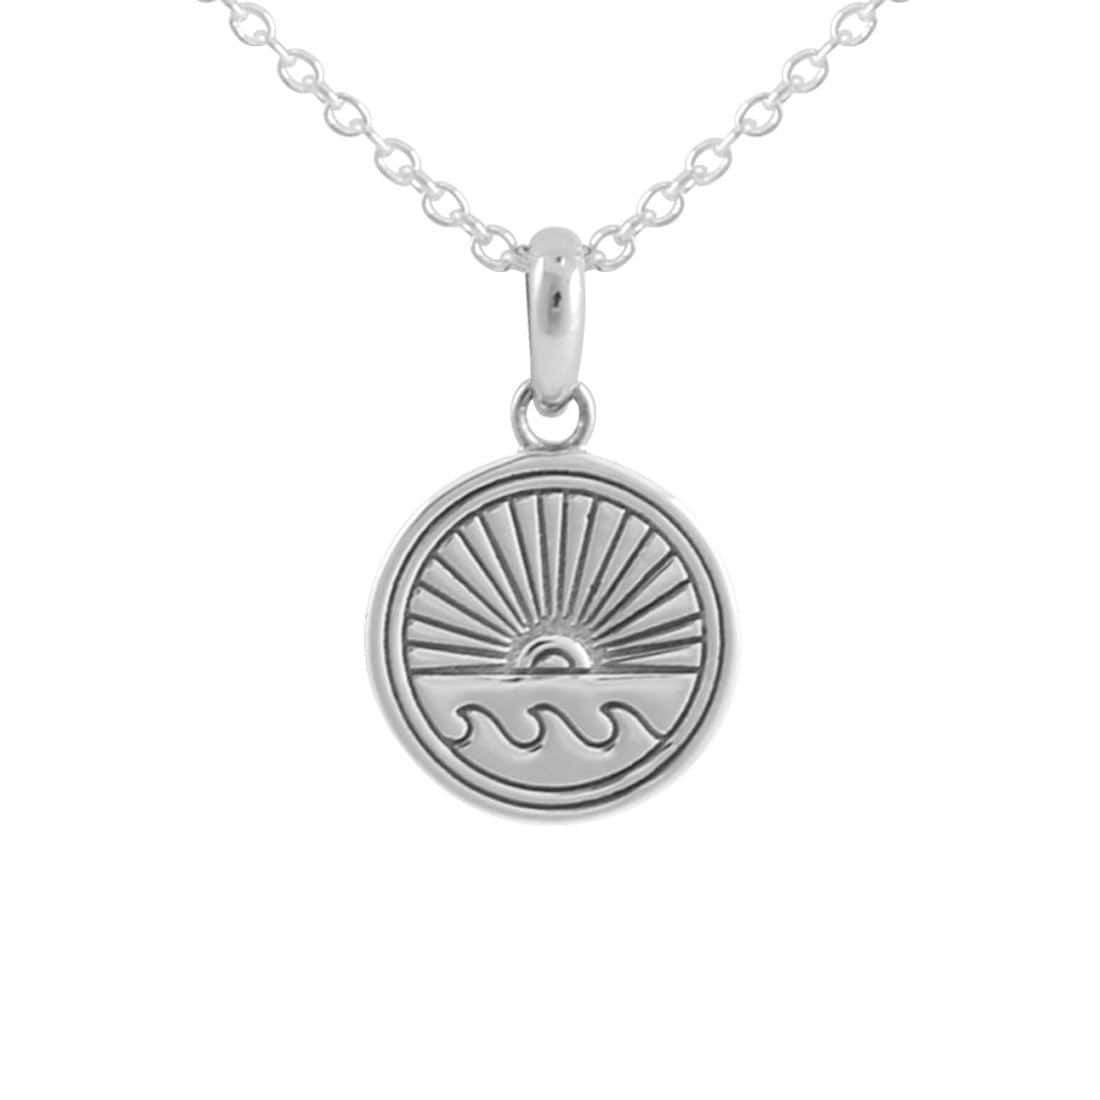 Midsummer Star Necklaces Ocean Horizon Medallion Necklace